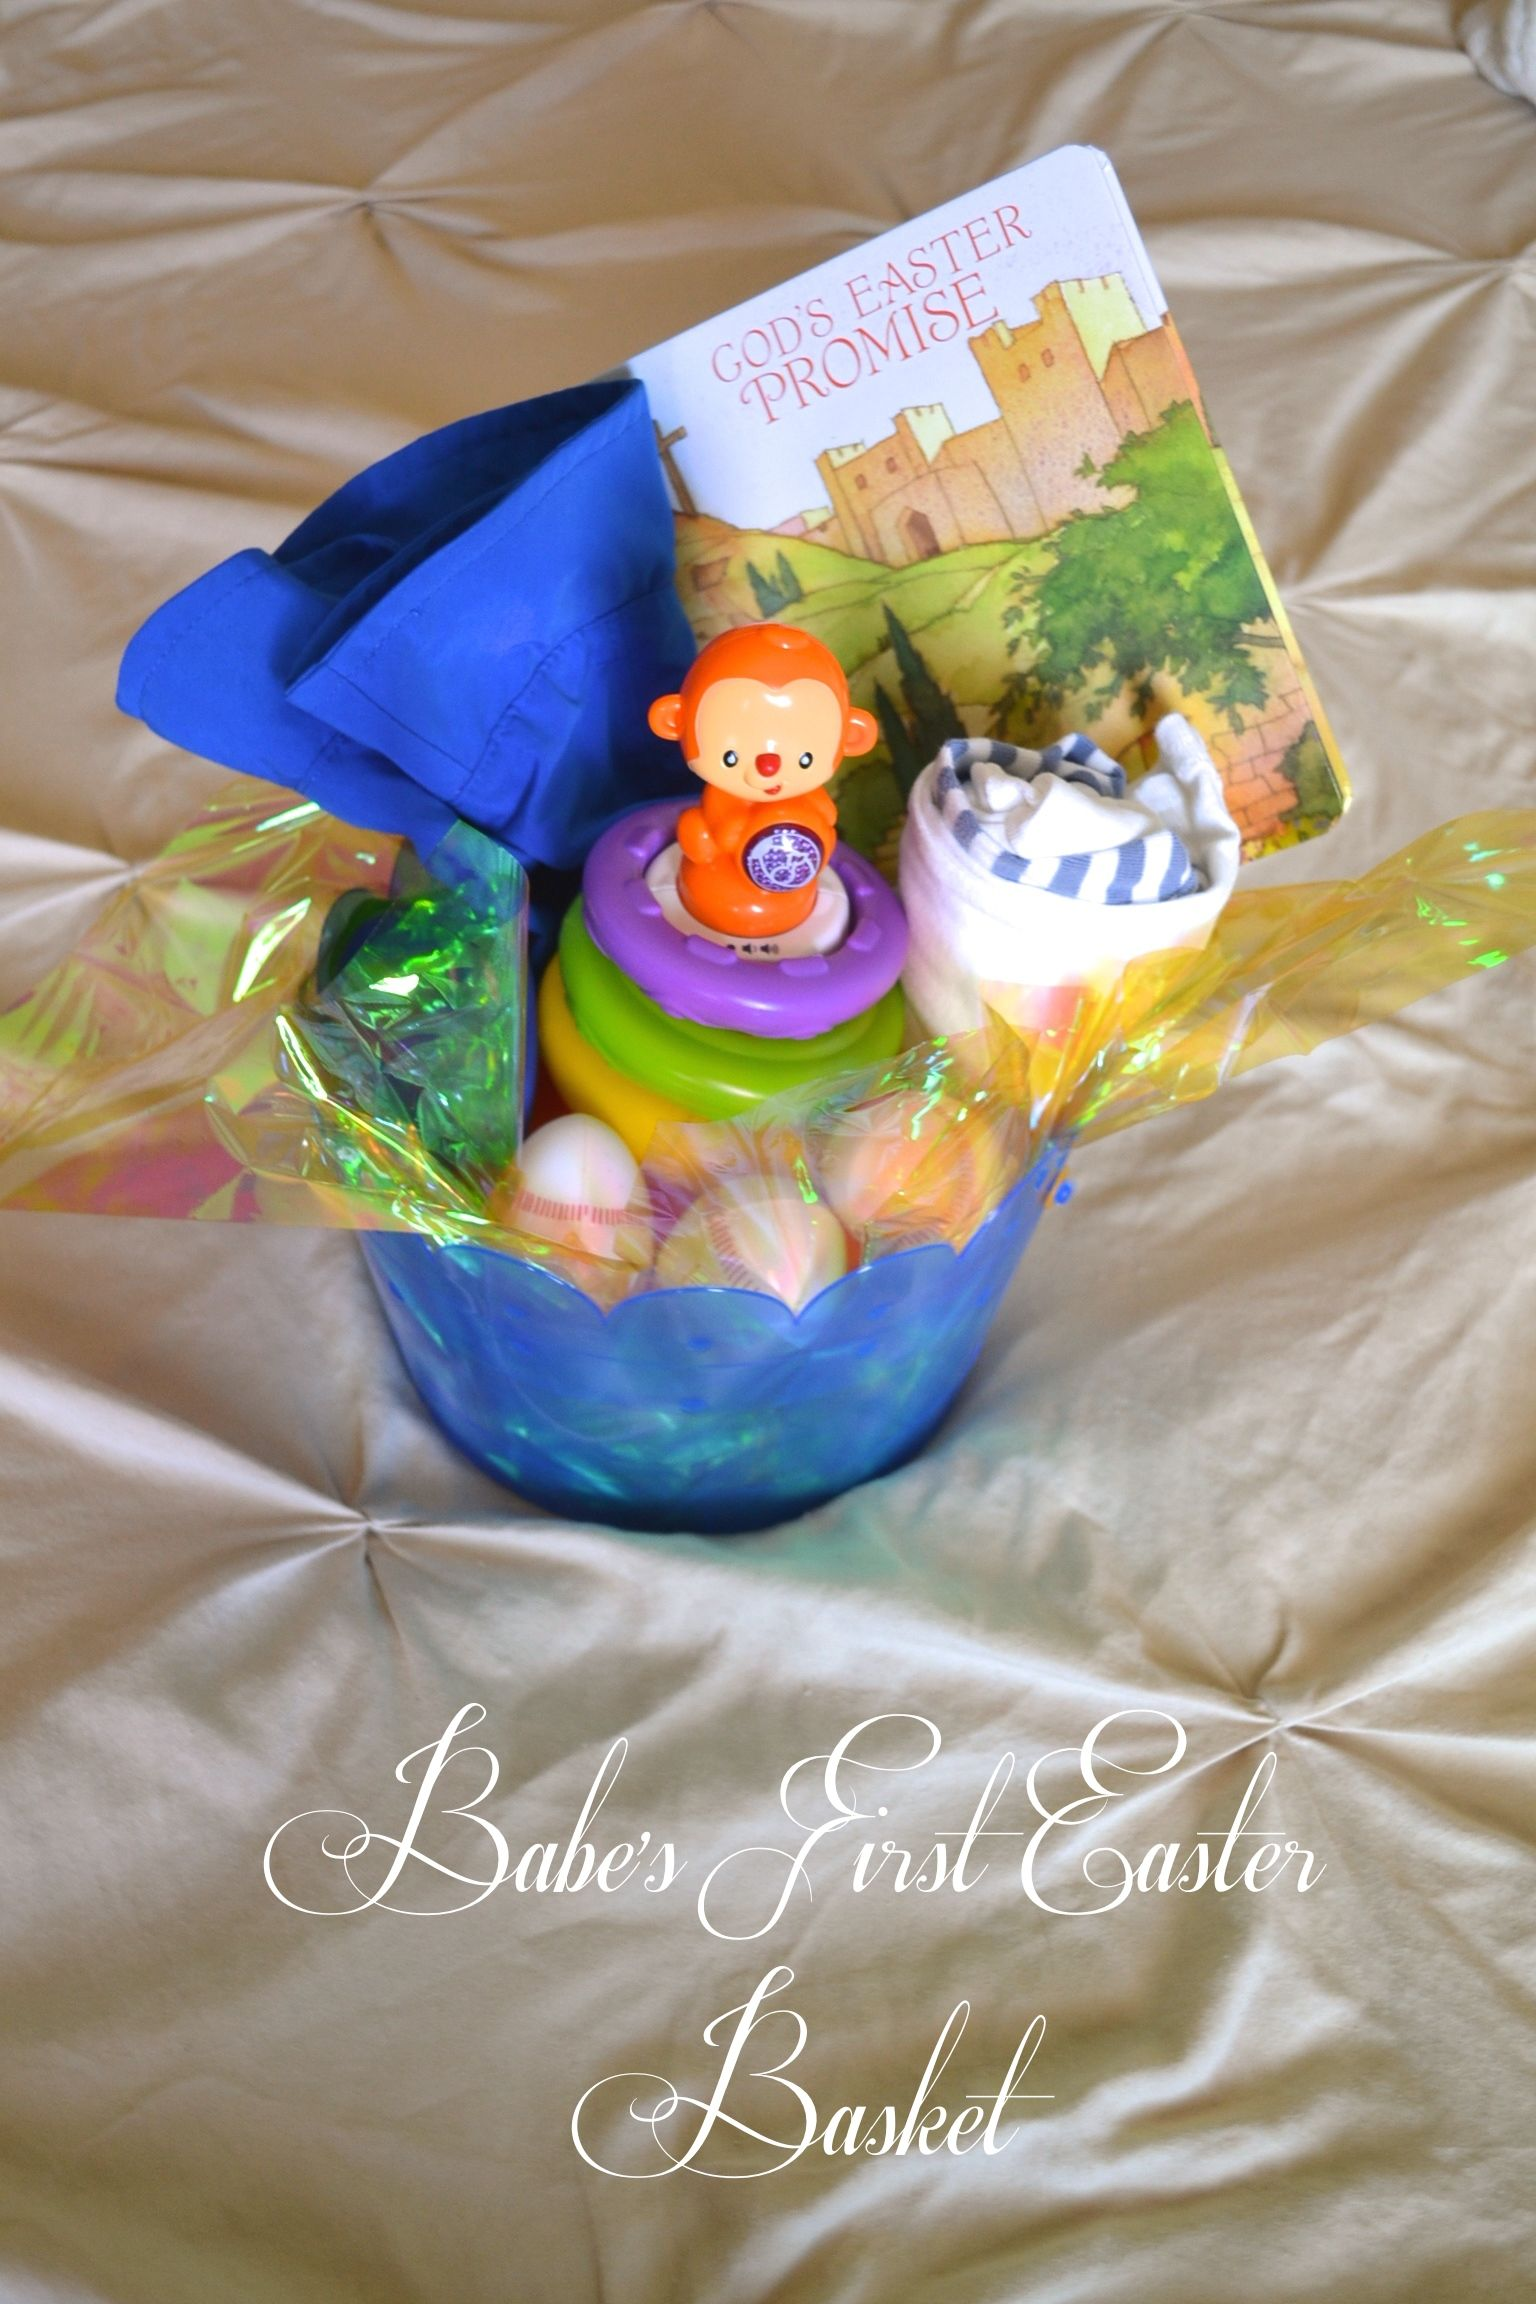 Babys first easter basket ideas for a 7 month olds easter babys first easter basket ideas for a 7 month olds easter basket easter basket negle Gallery